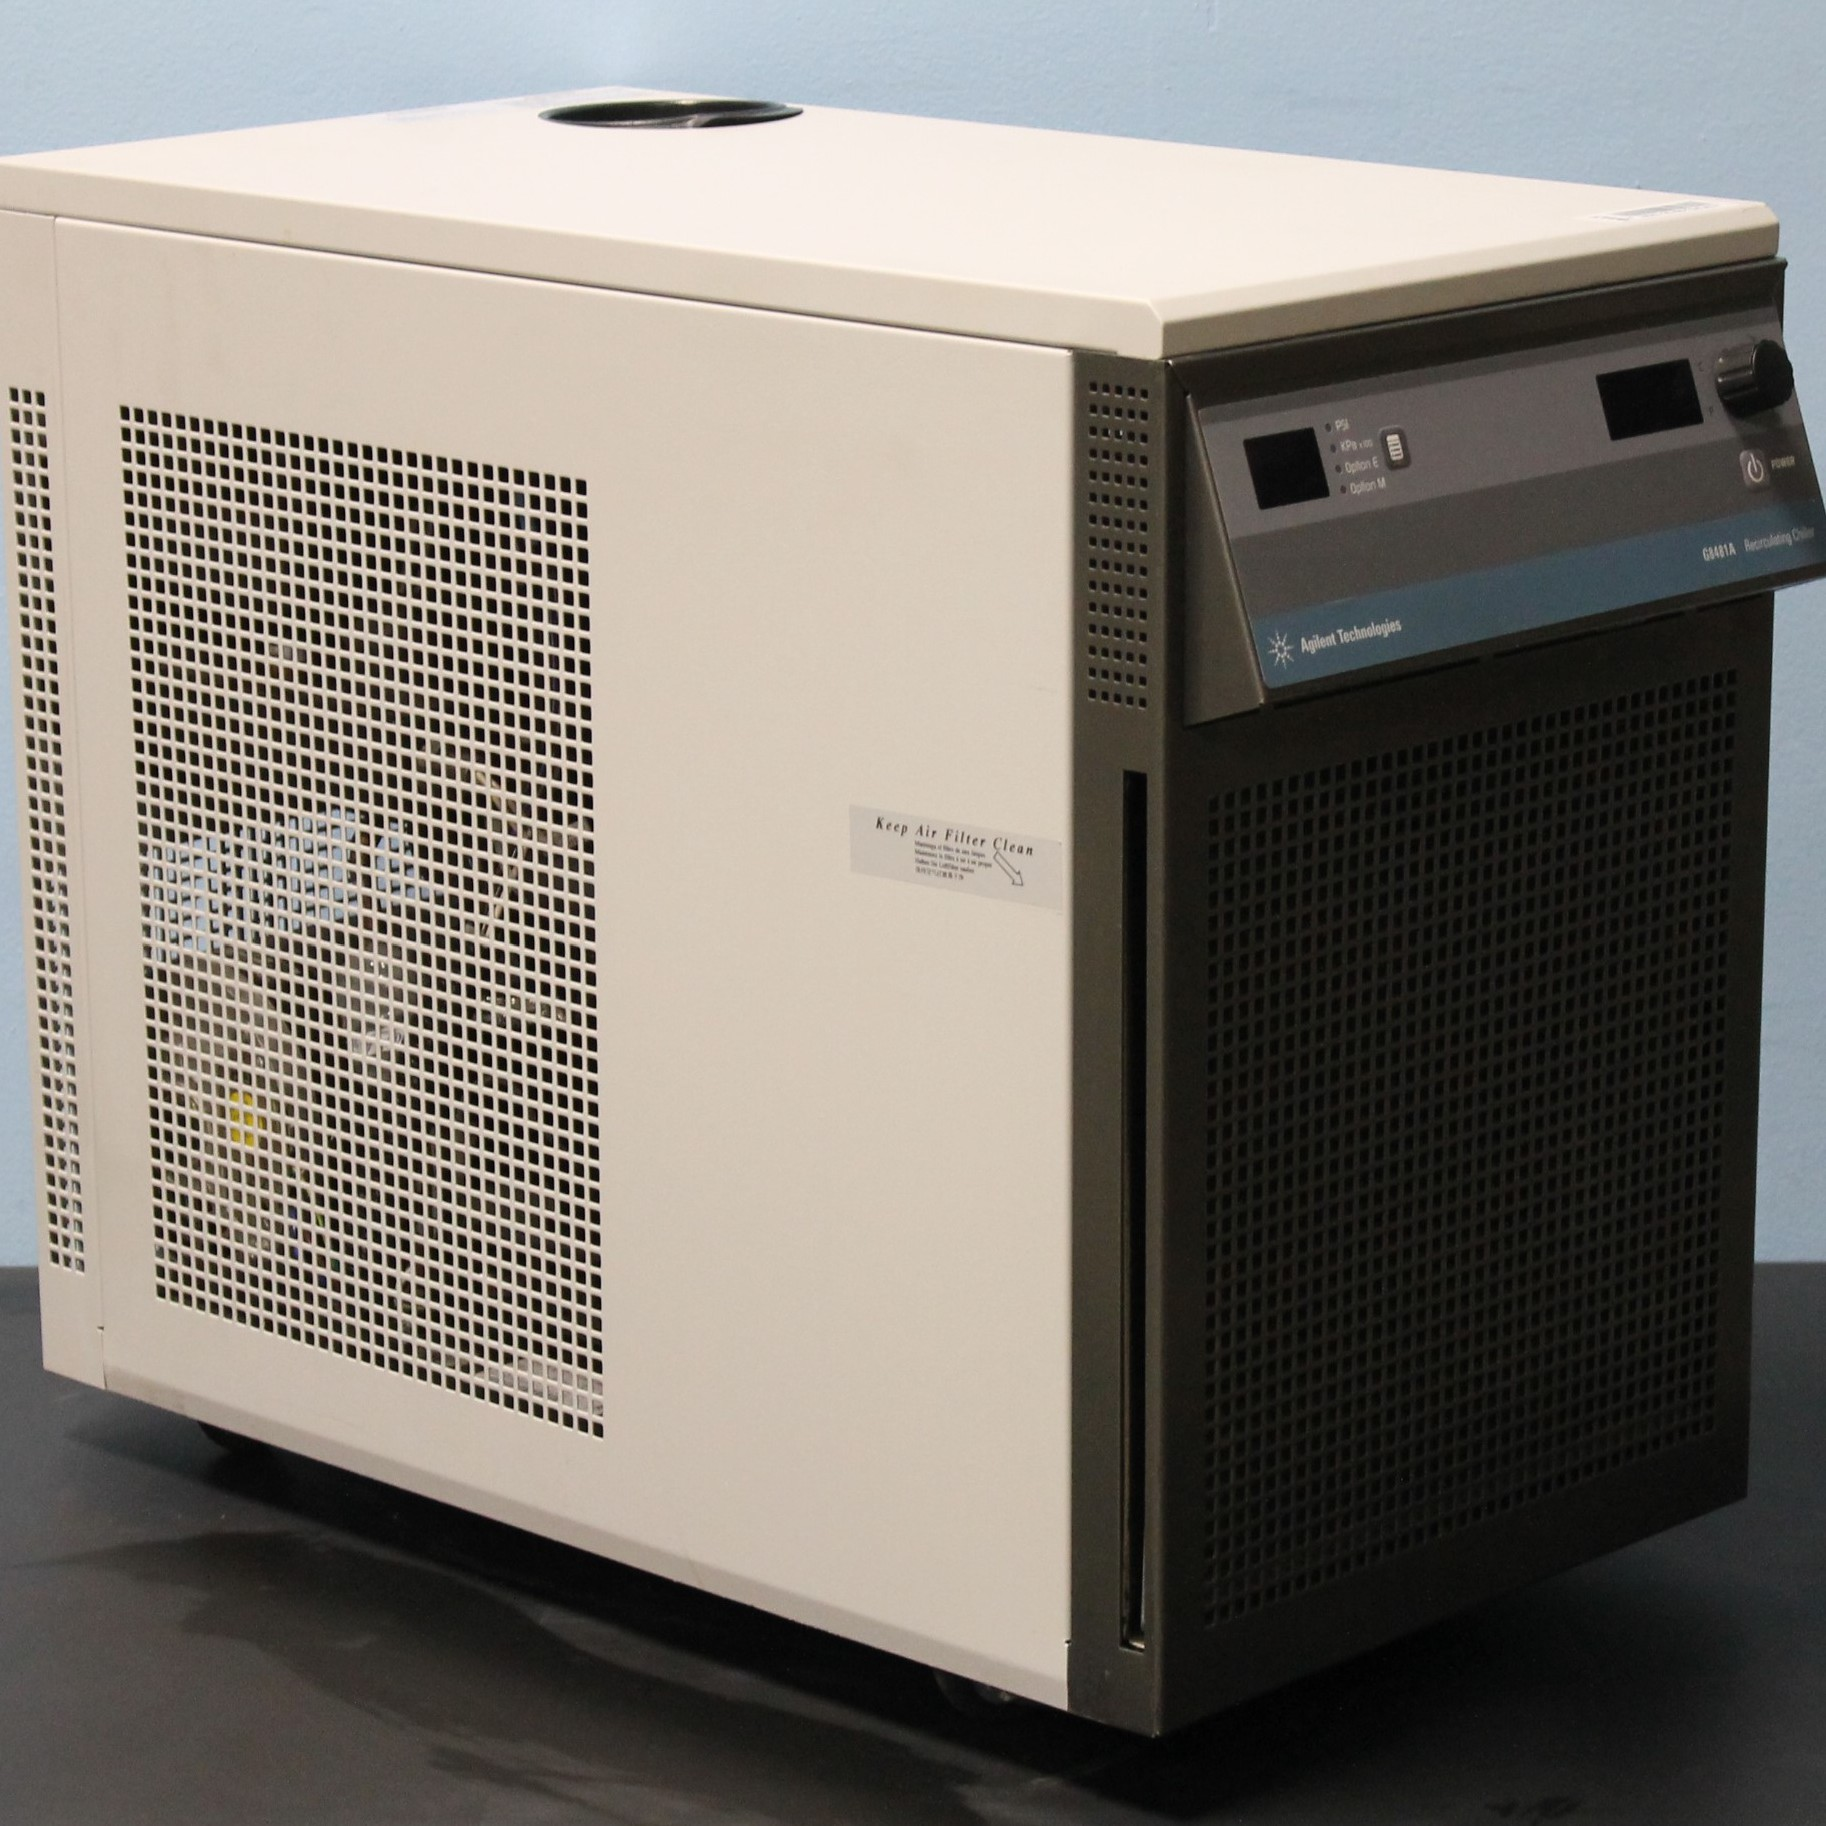 Agilent Technologies G8481A Water Chiller Image